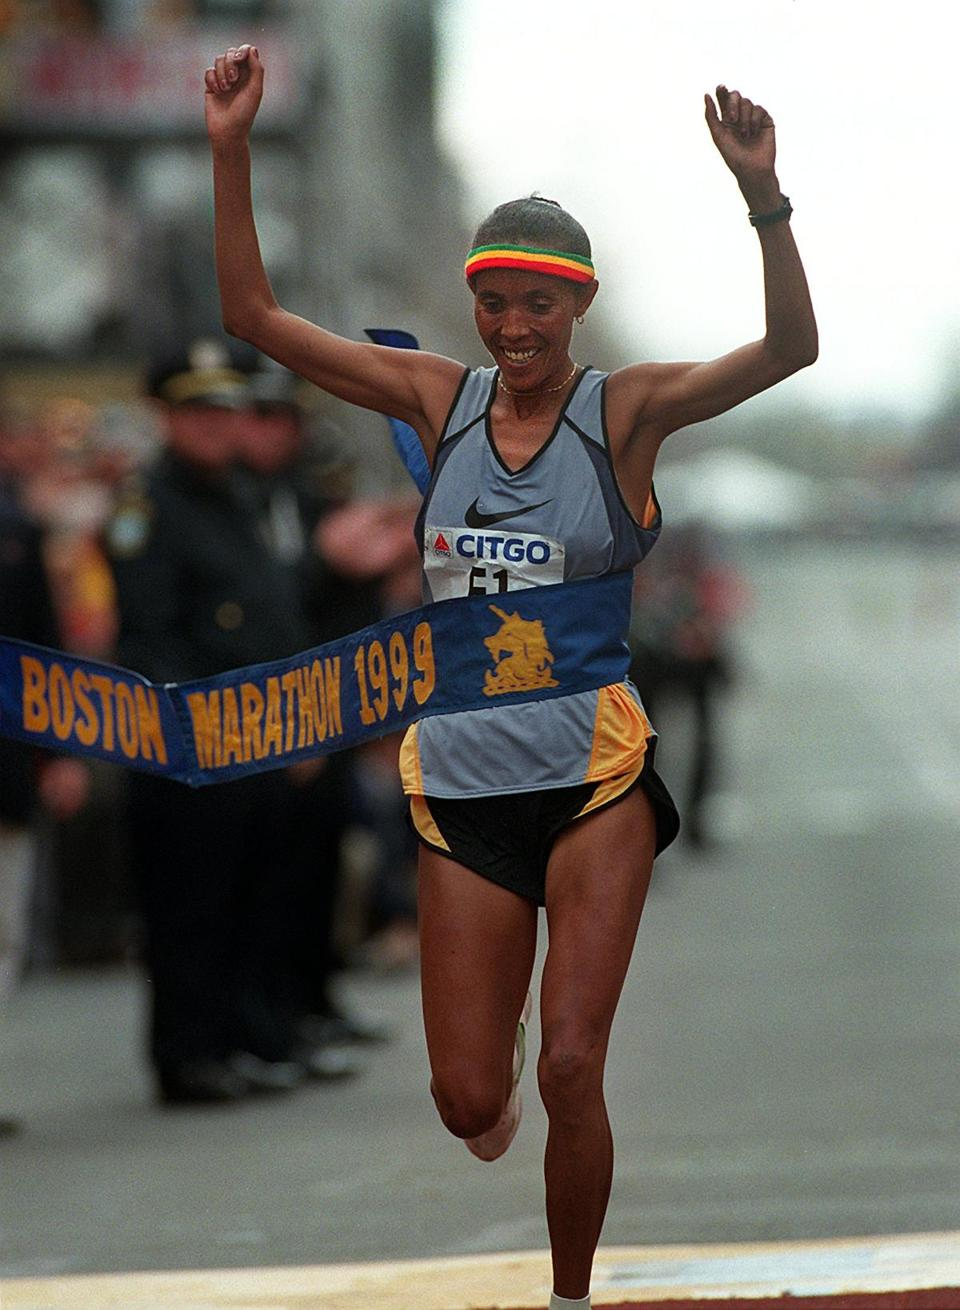 Fatuma Roba, winner in 1997, 1998, and 1999, hasn't run a marathon since 2004 but still does charity road races.